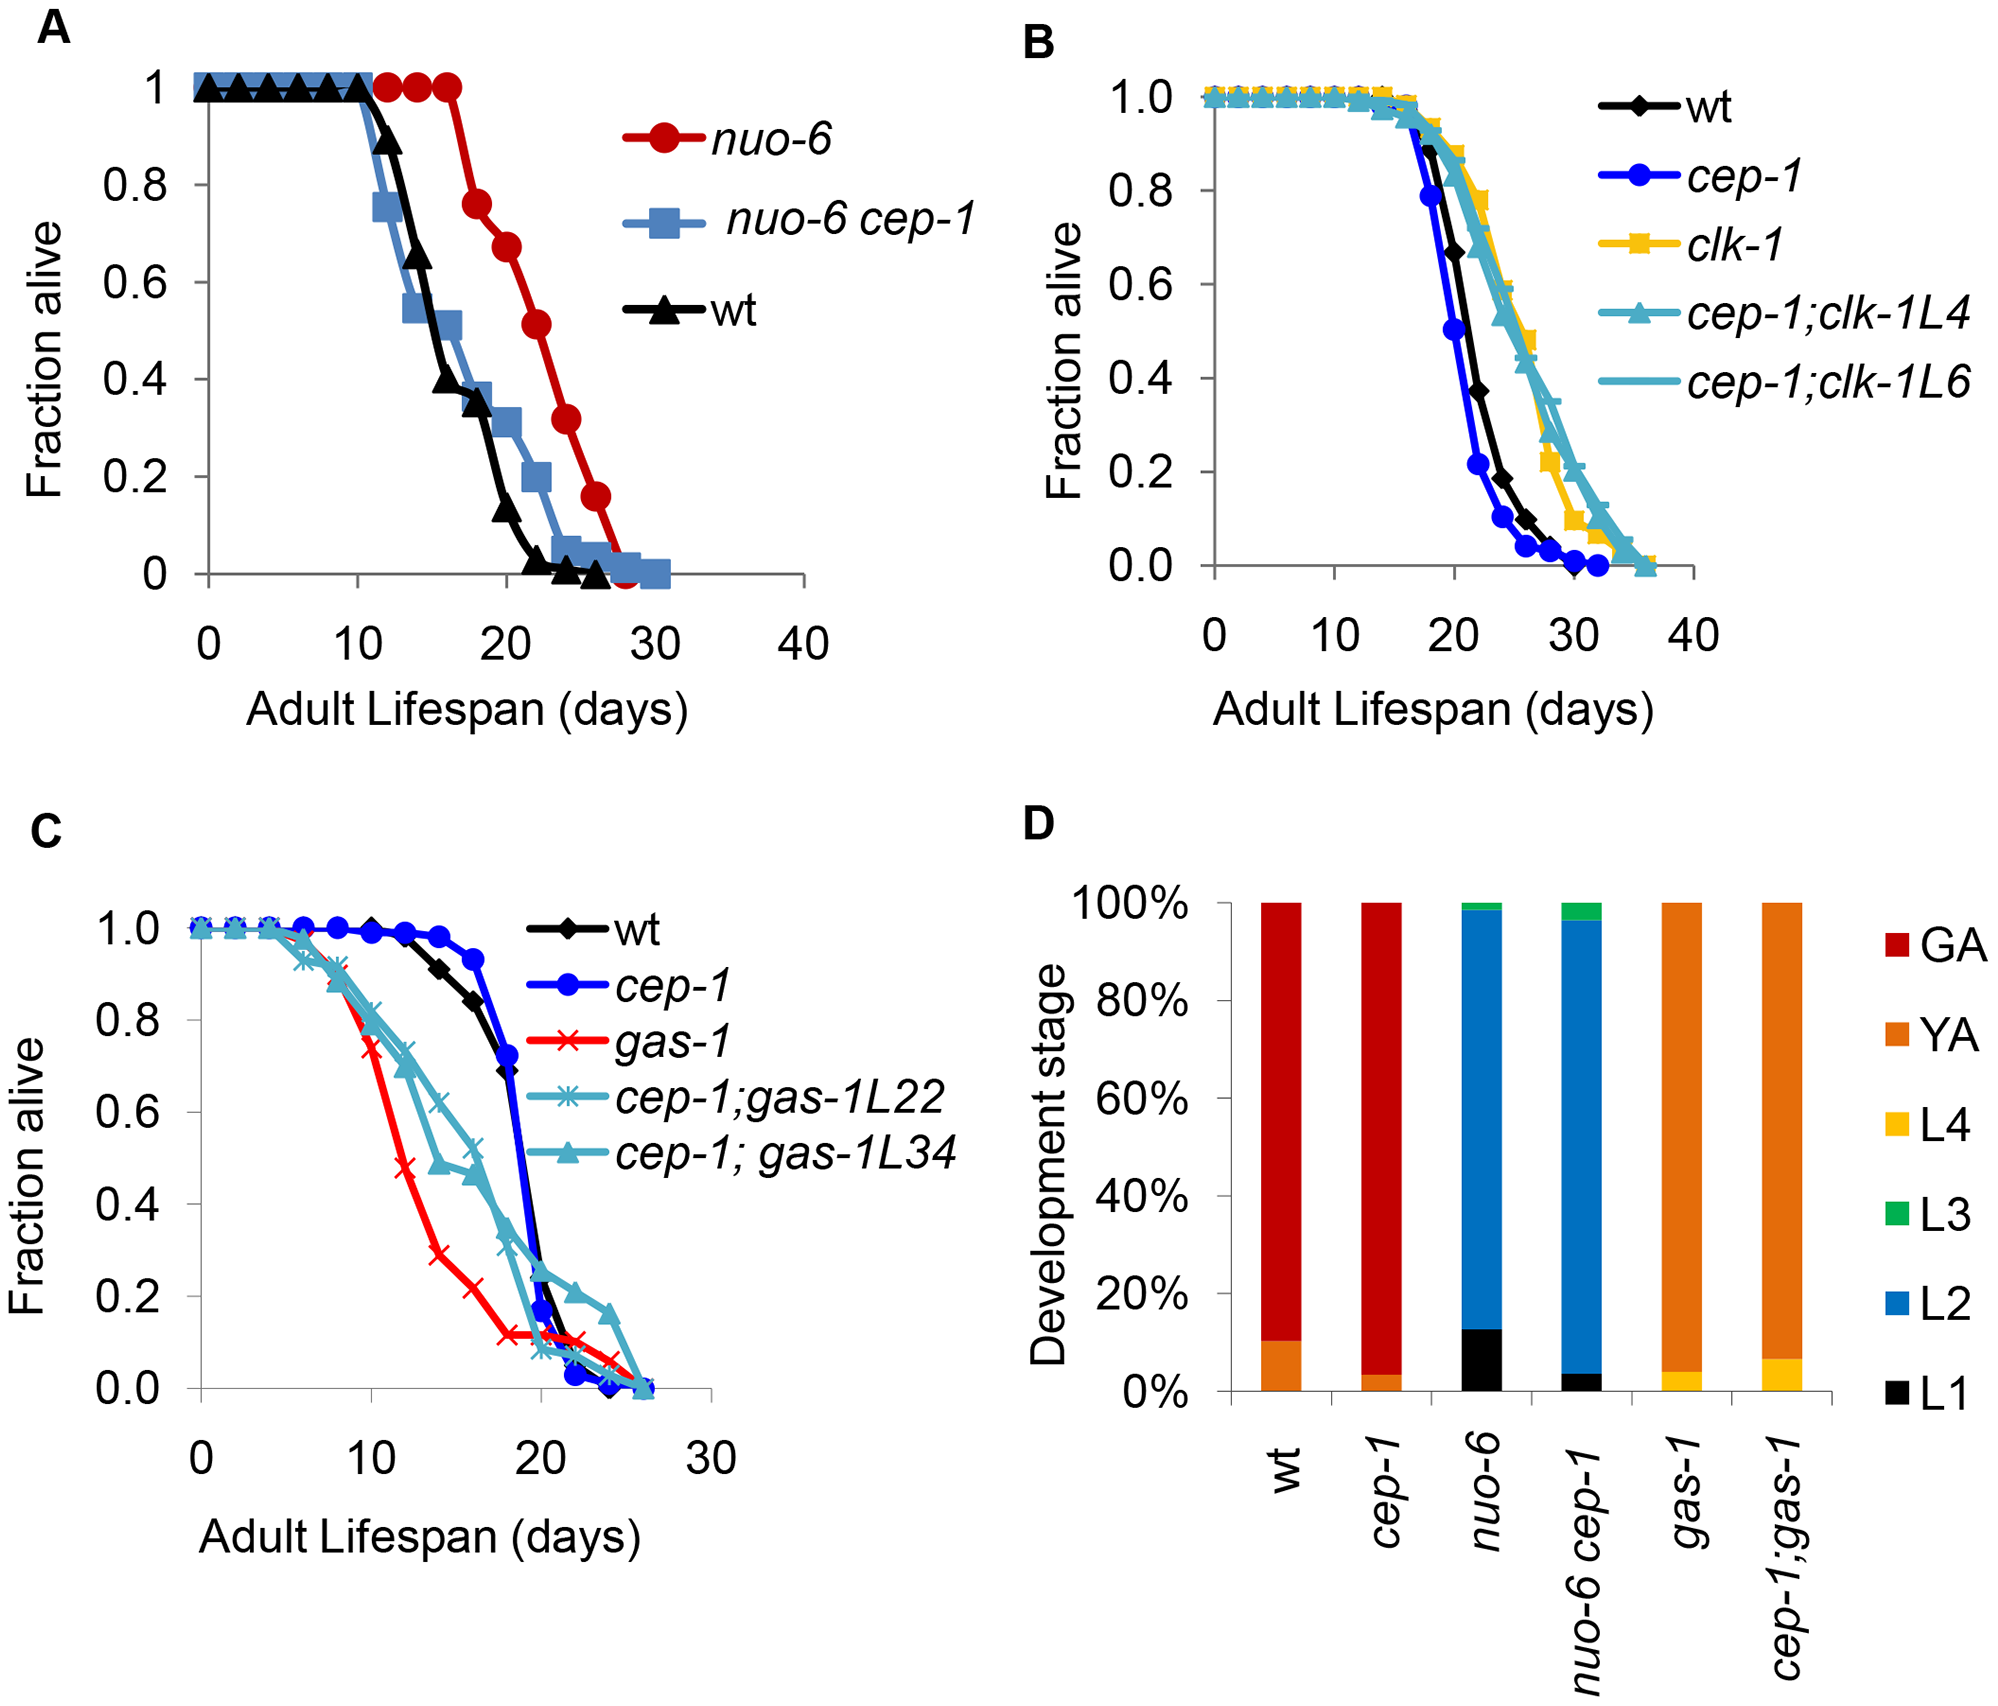 CEP-1 mediates the longevity and development of several mitochondrial mutants in <i>C. elegans</i>.